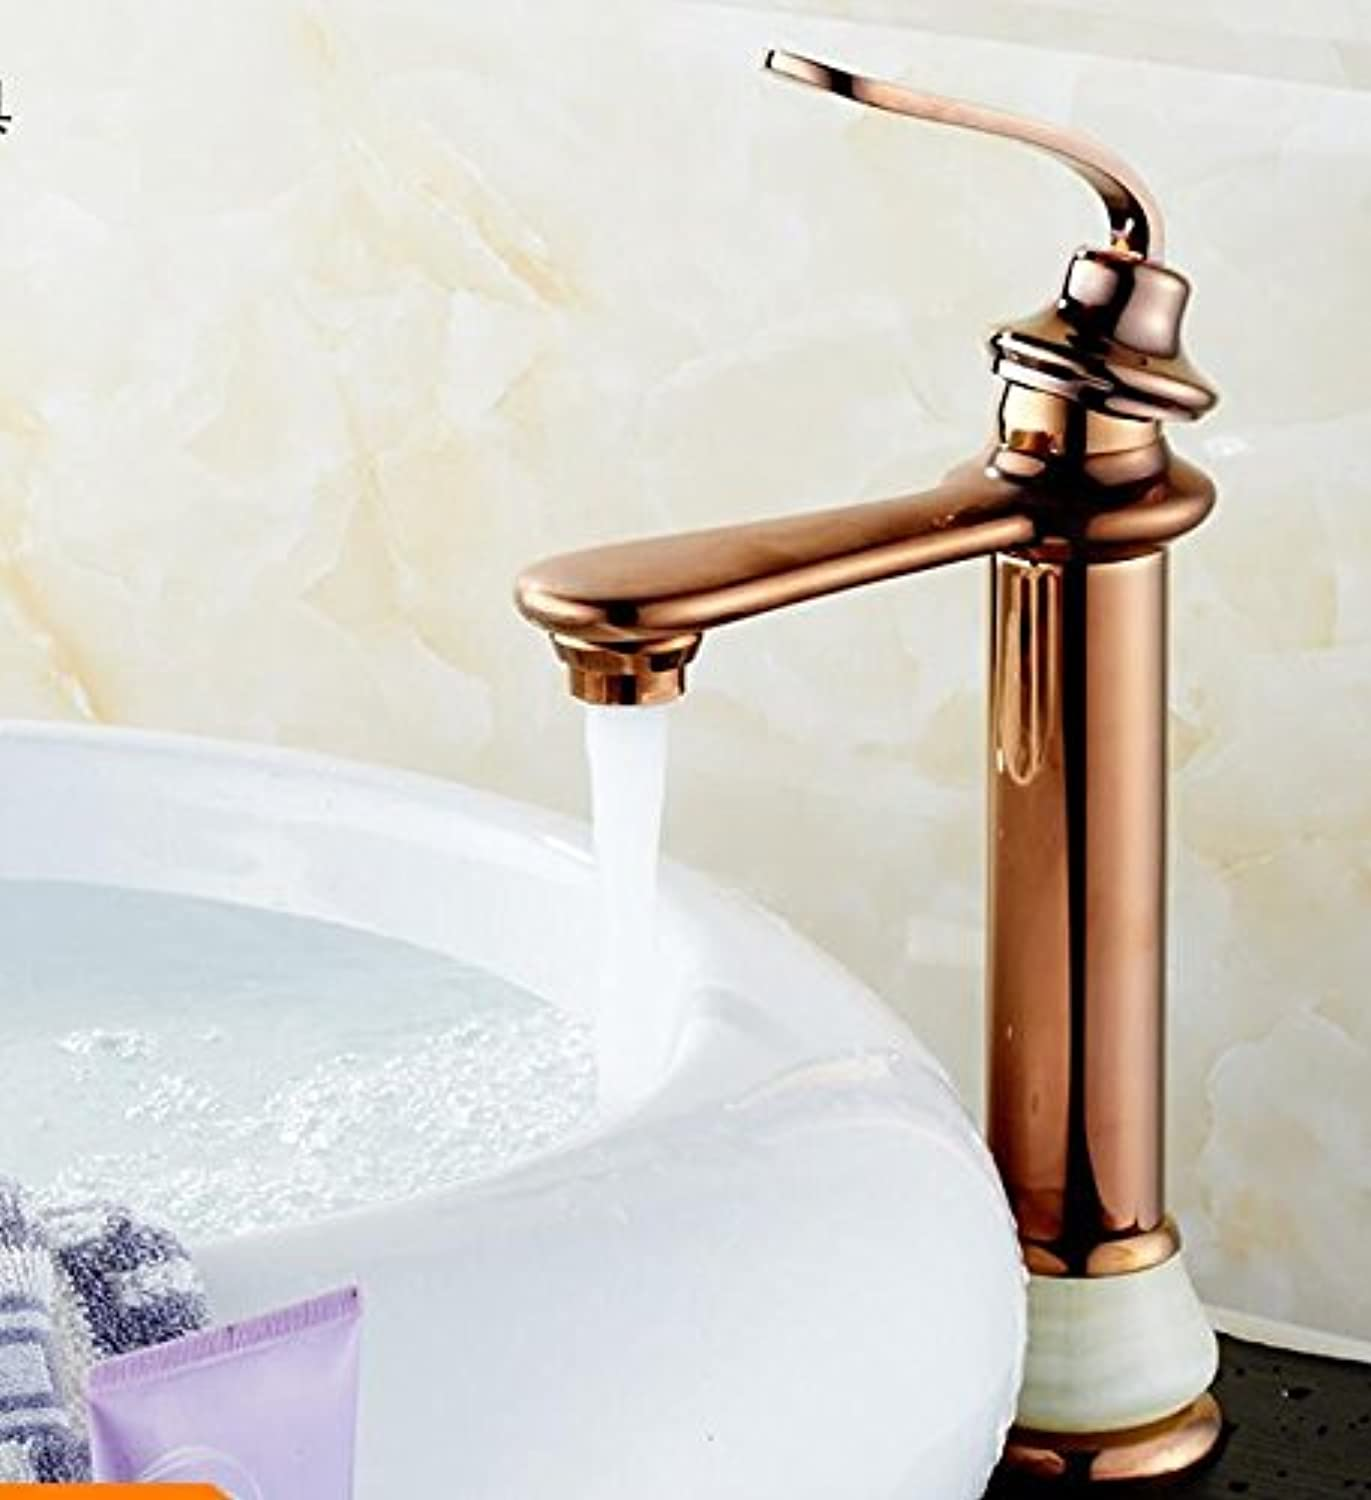 GQLB Kitchen tap hot and cold water mixer taps kitchen sink basin mixer tap solid brass